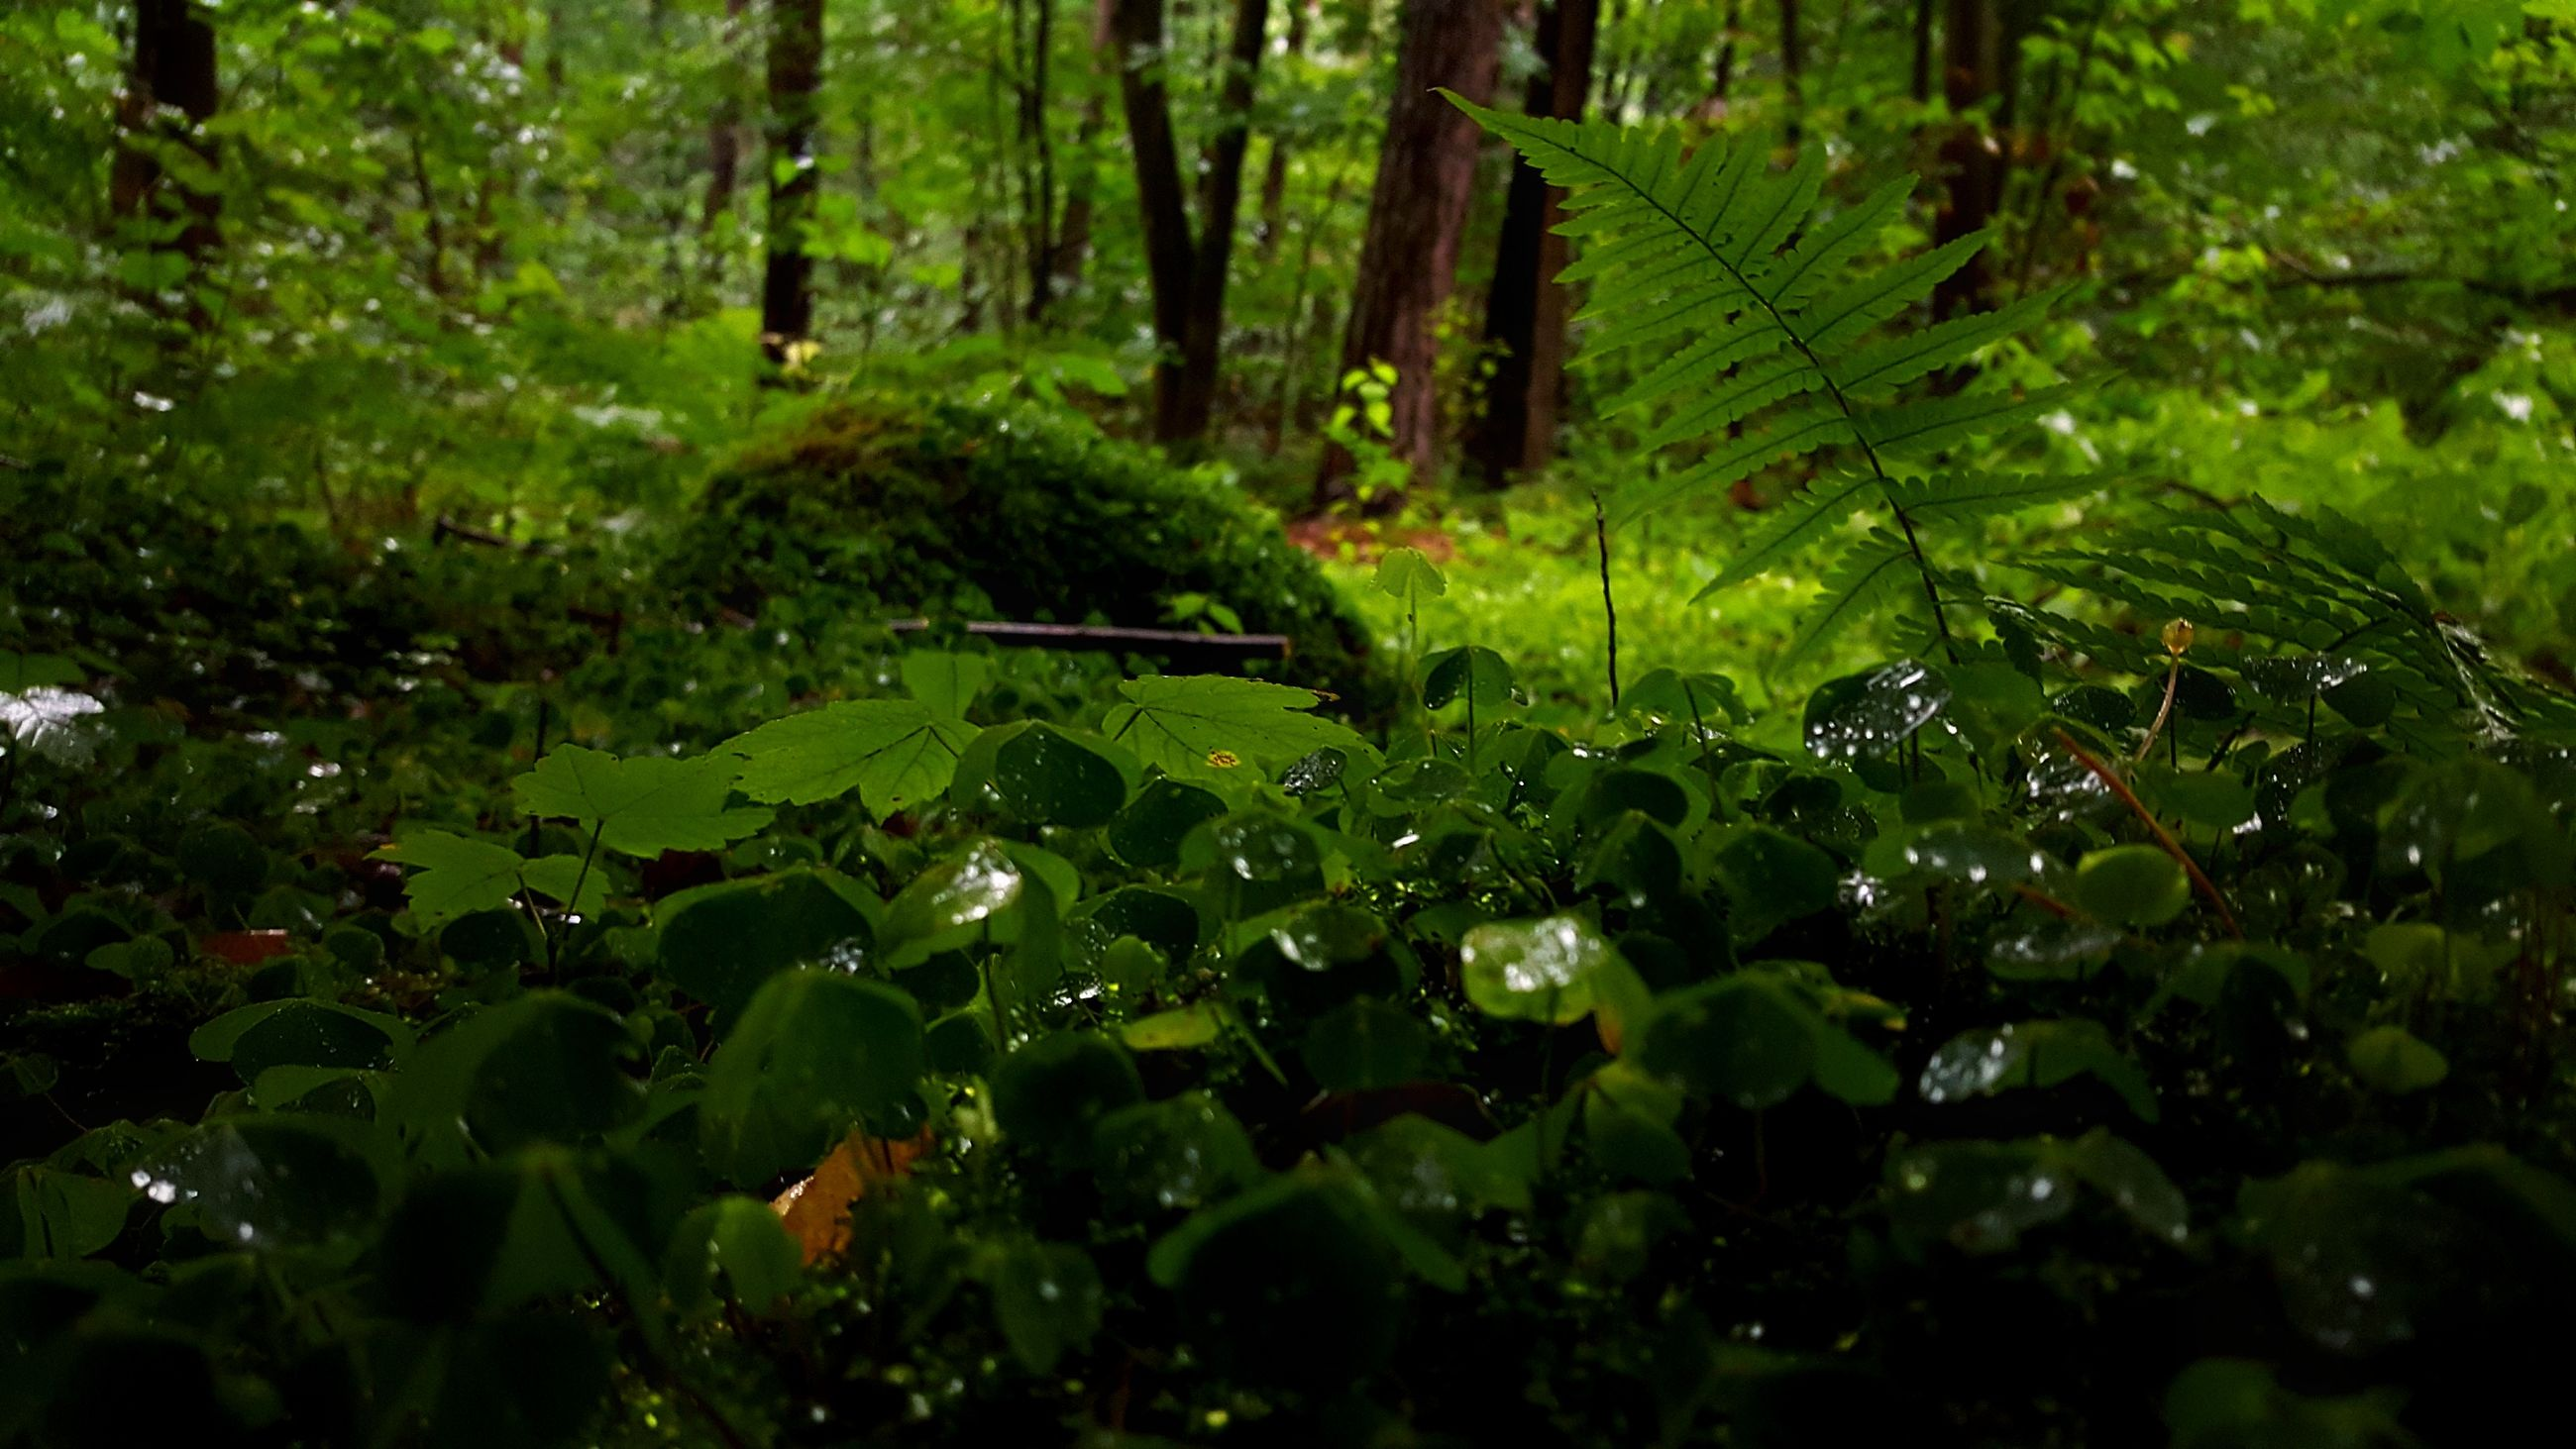 nature, growth, green color, tree, leaf, forest, beauty in nature, tranquility, no people, leaves, outdoors, day, freshness